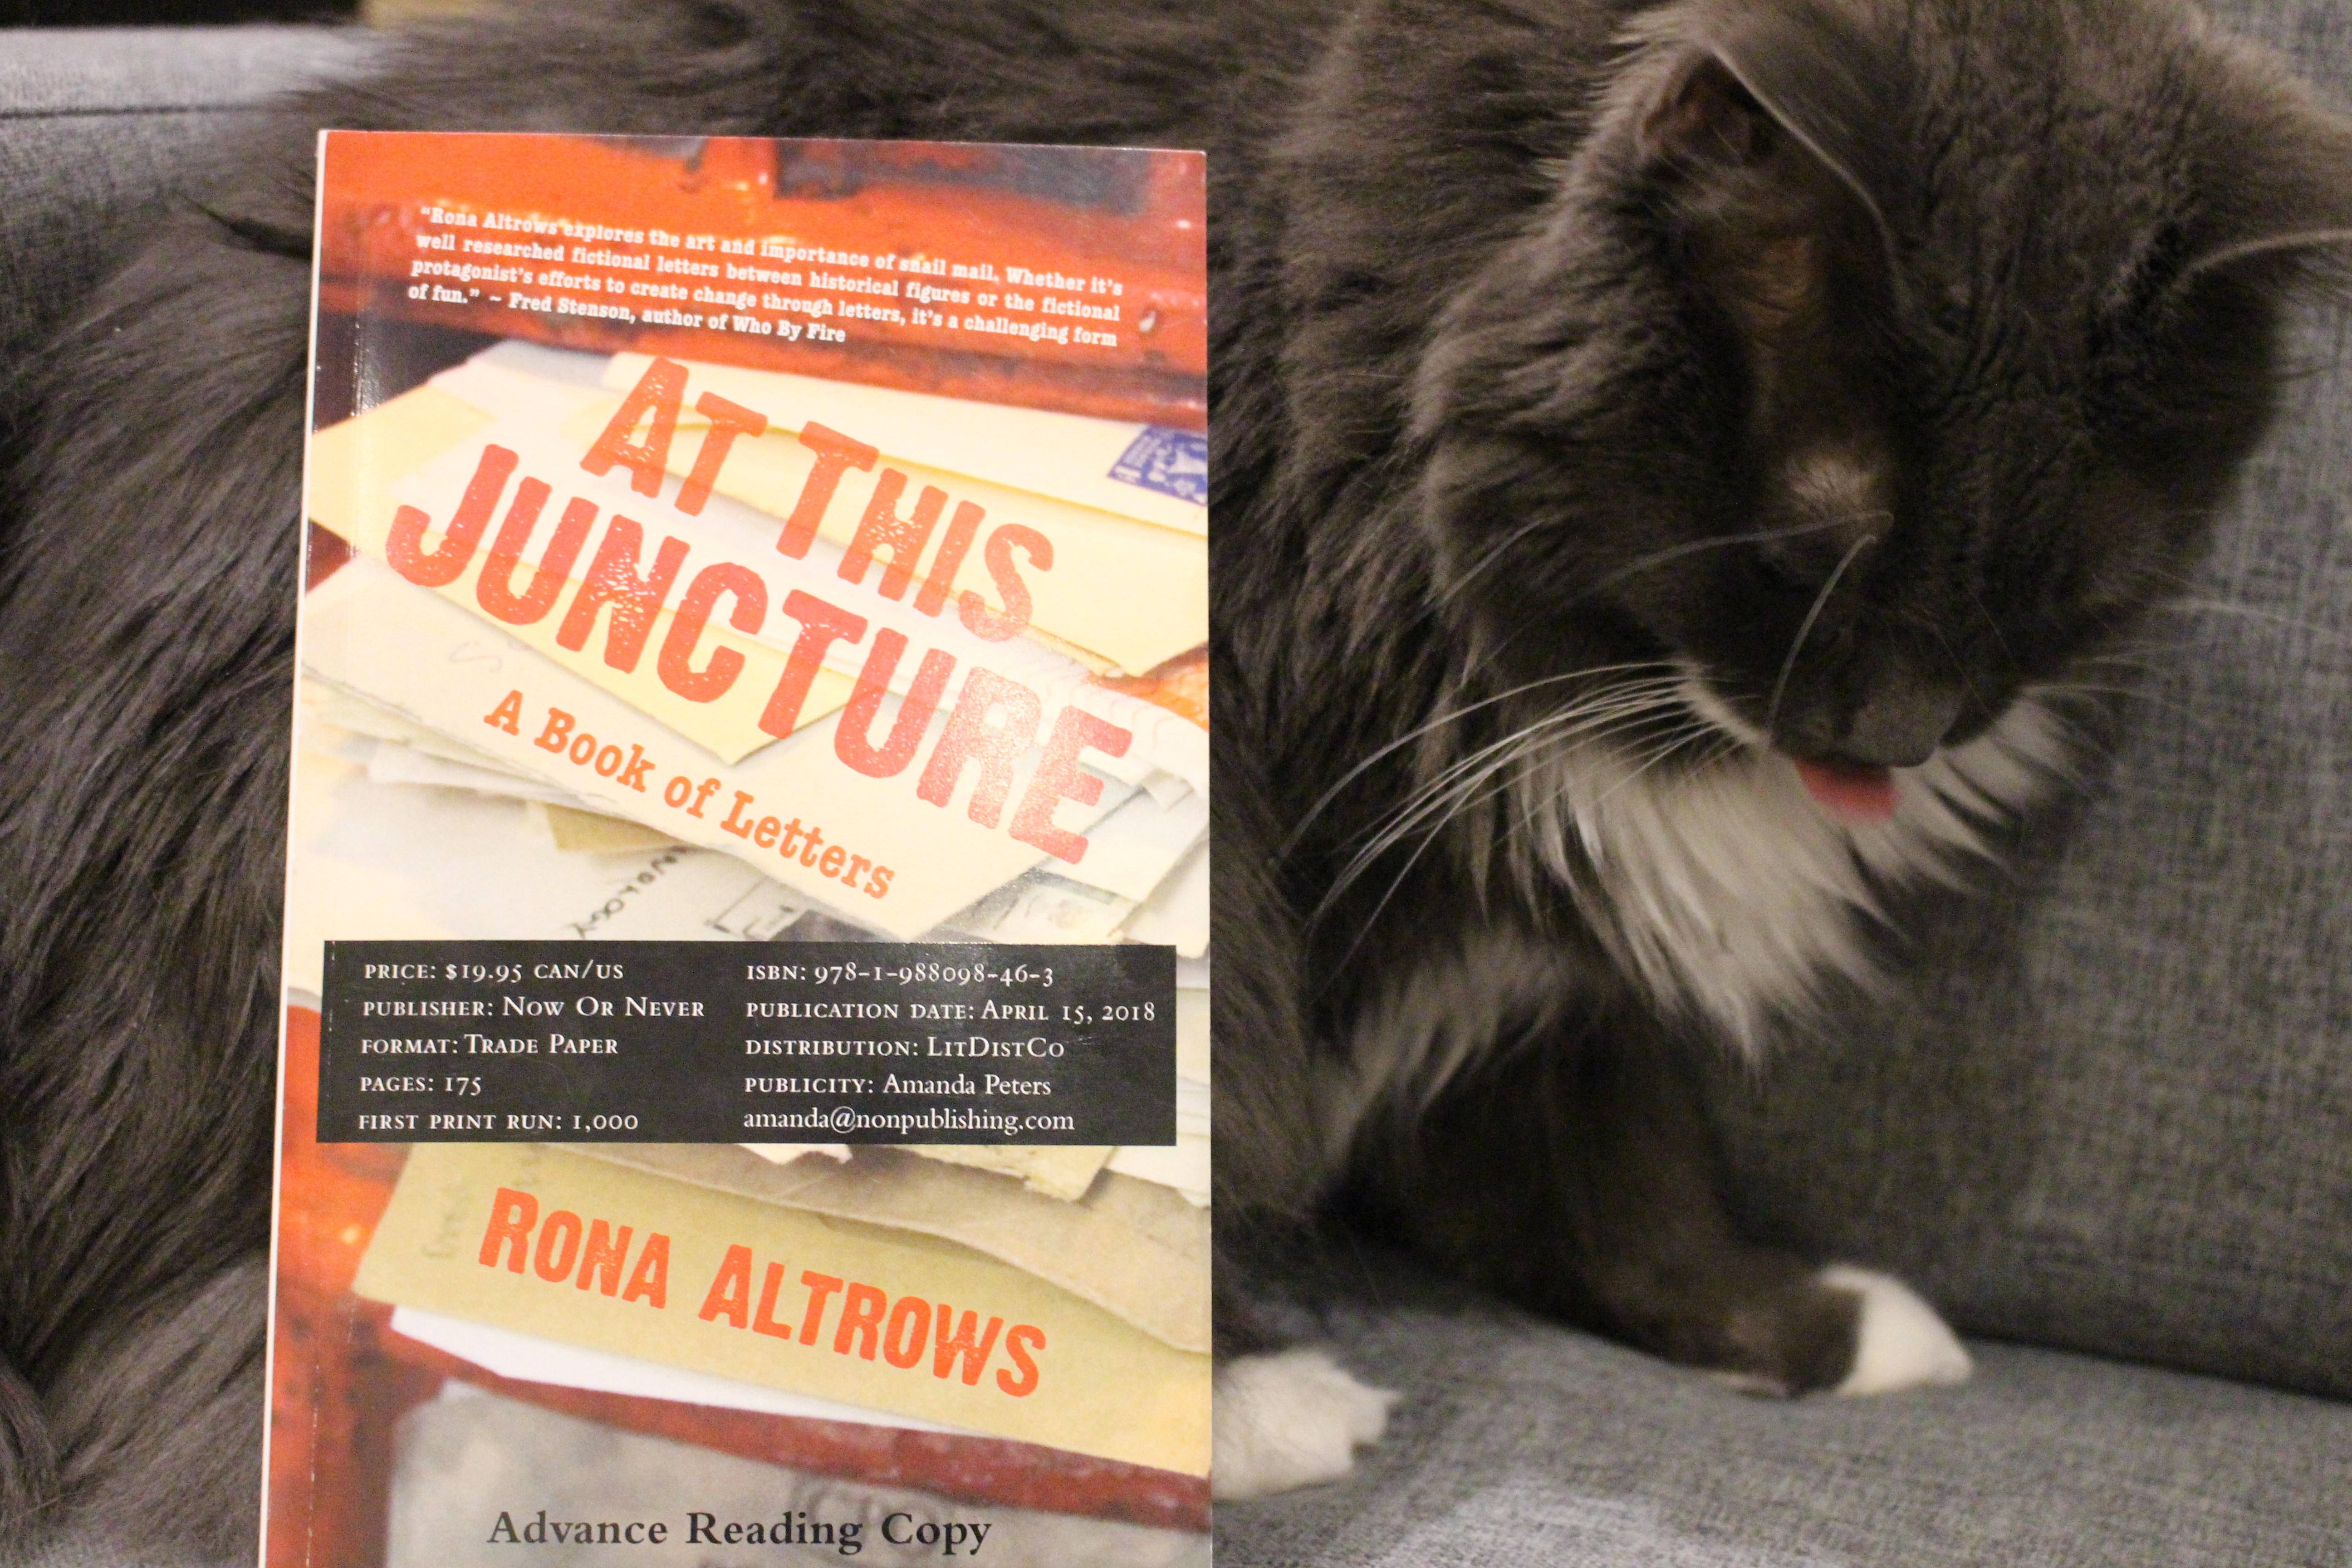 Book Review: At This Juncture by Rona Altrows